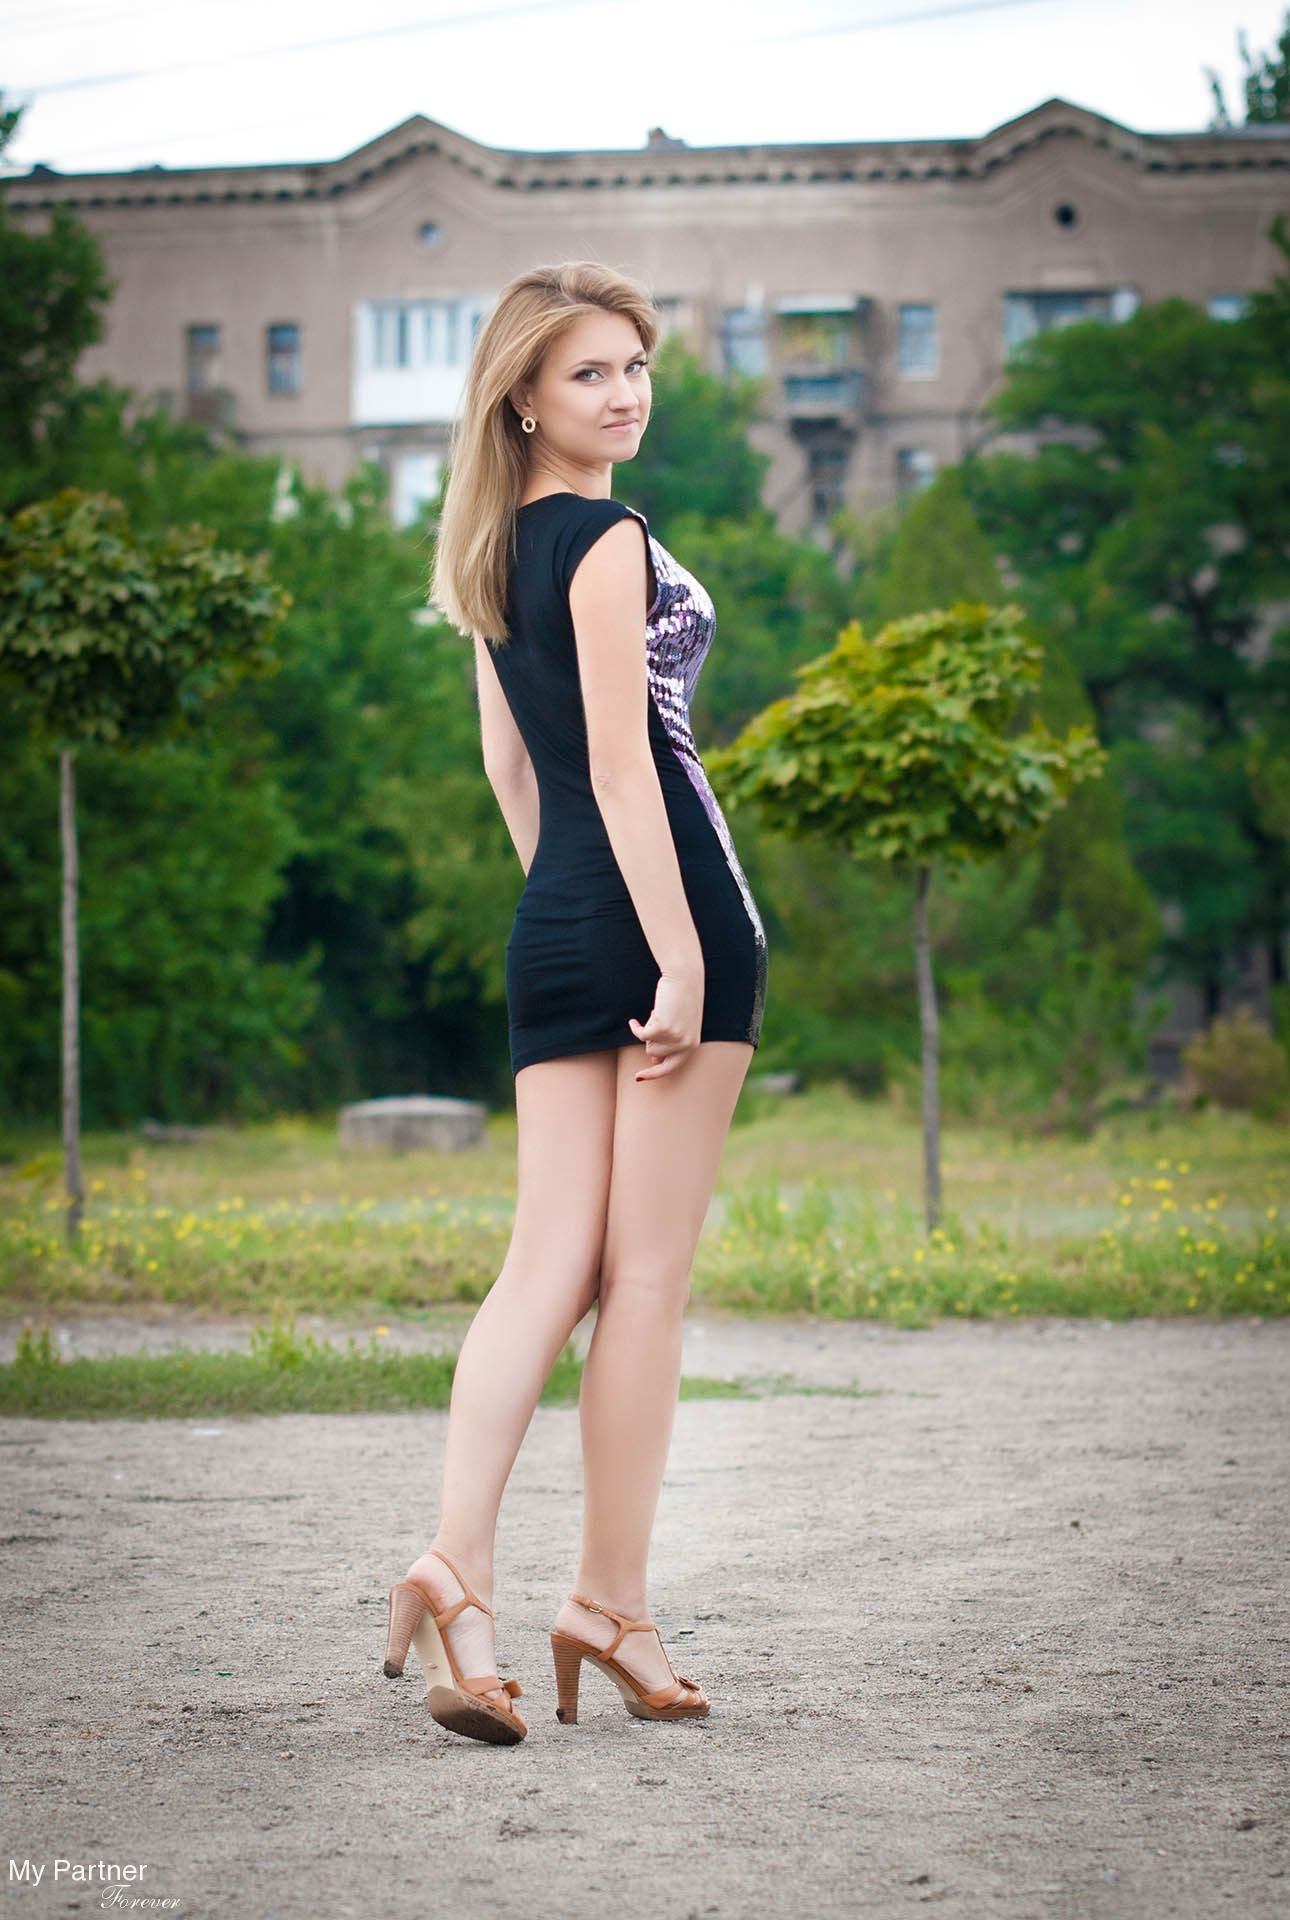 Anytime Russian Dating Sites - Sexy Boobs Pics